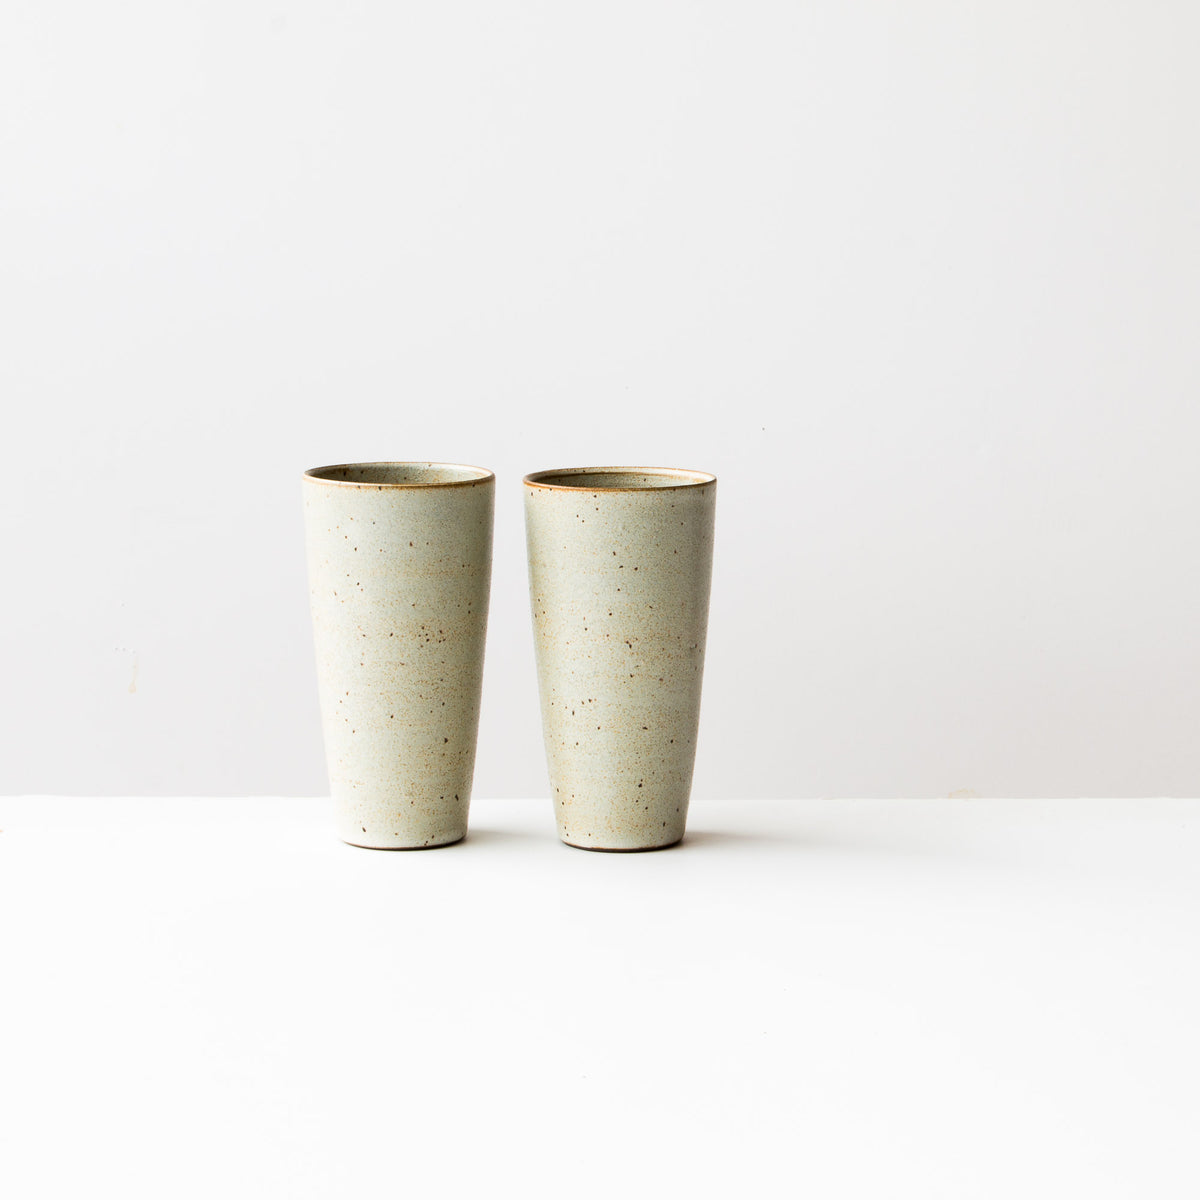 Greige Colour - Handmade Tall Ceramic Tumblers - Sold Online by Chic & Basta